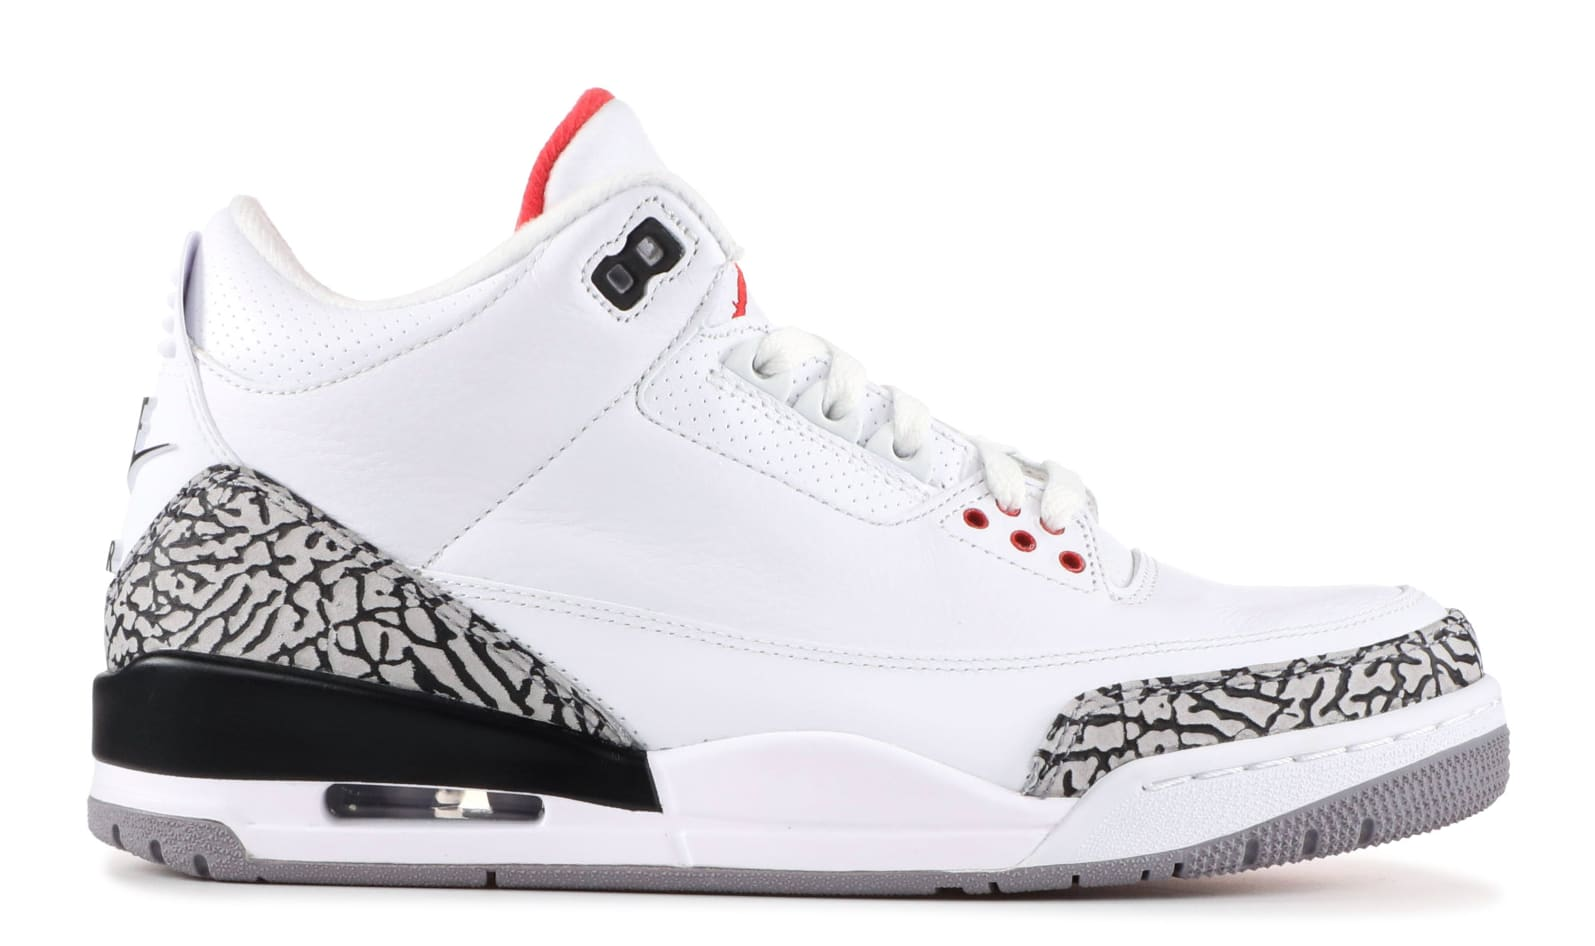 Air Jordan 3 'White/Cement